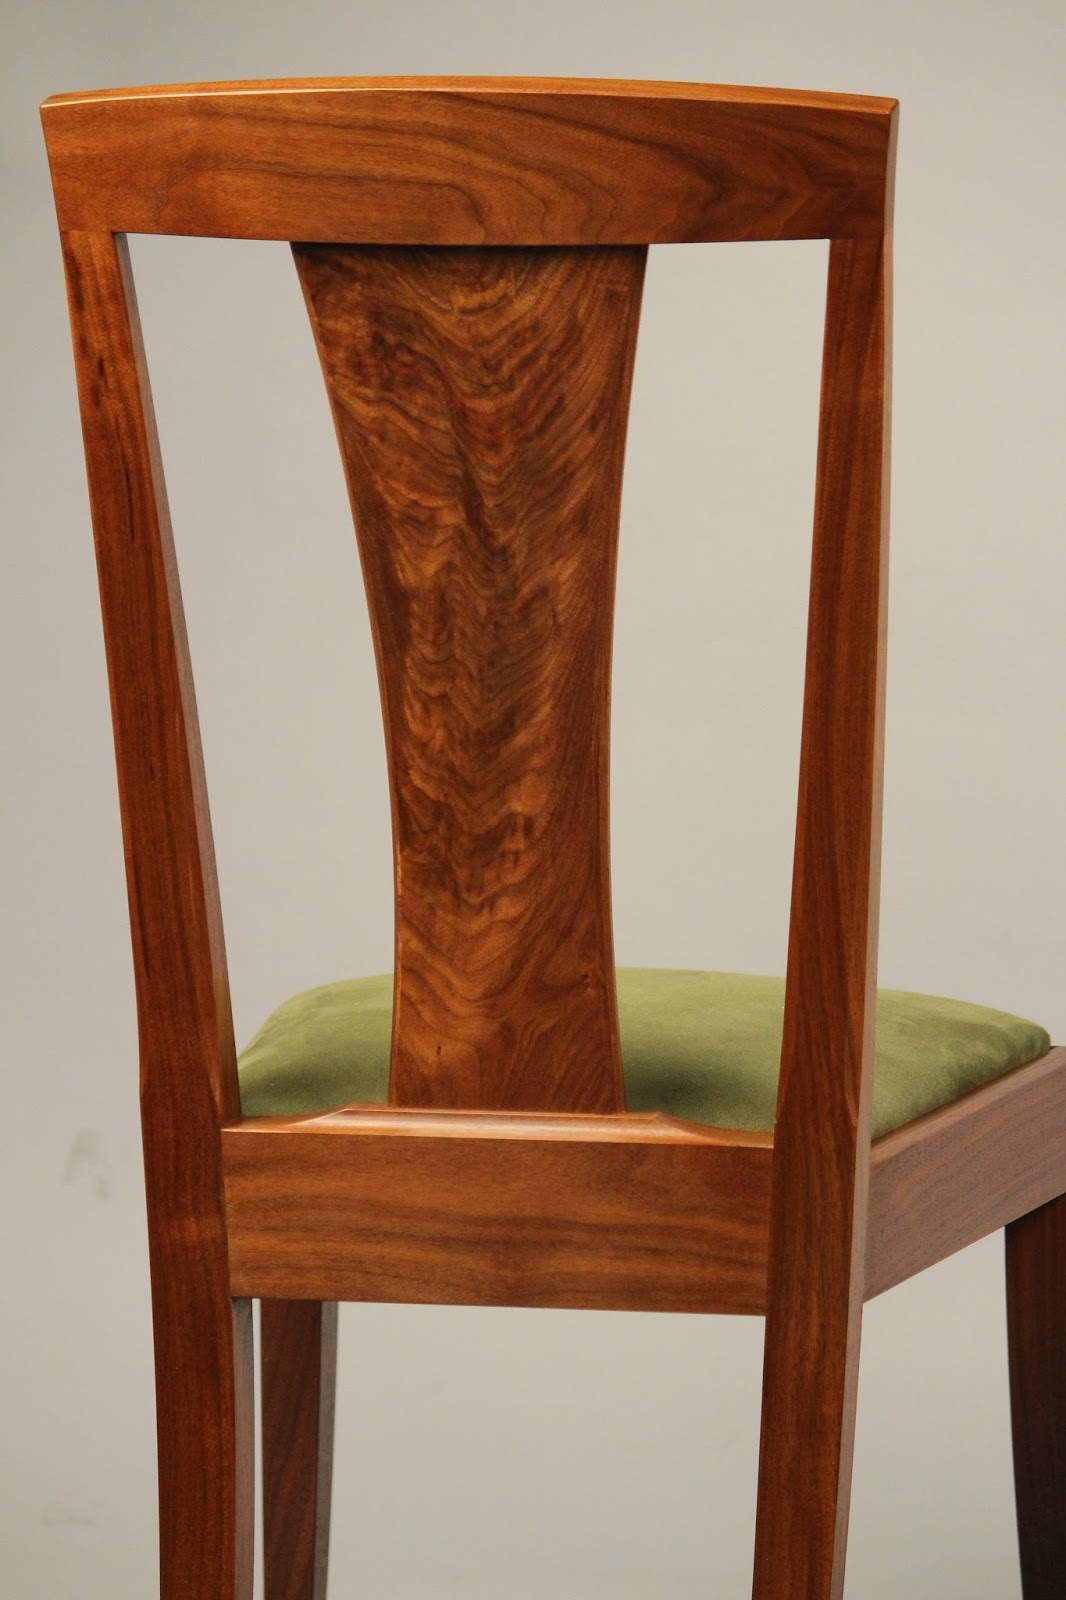 handmade hardwood chair